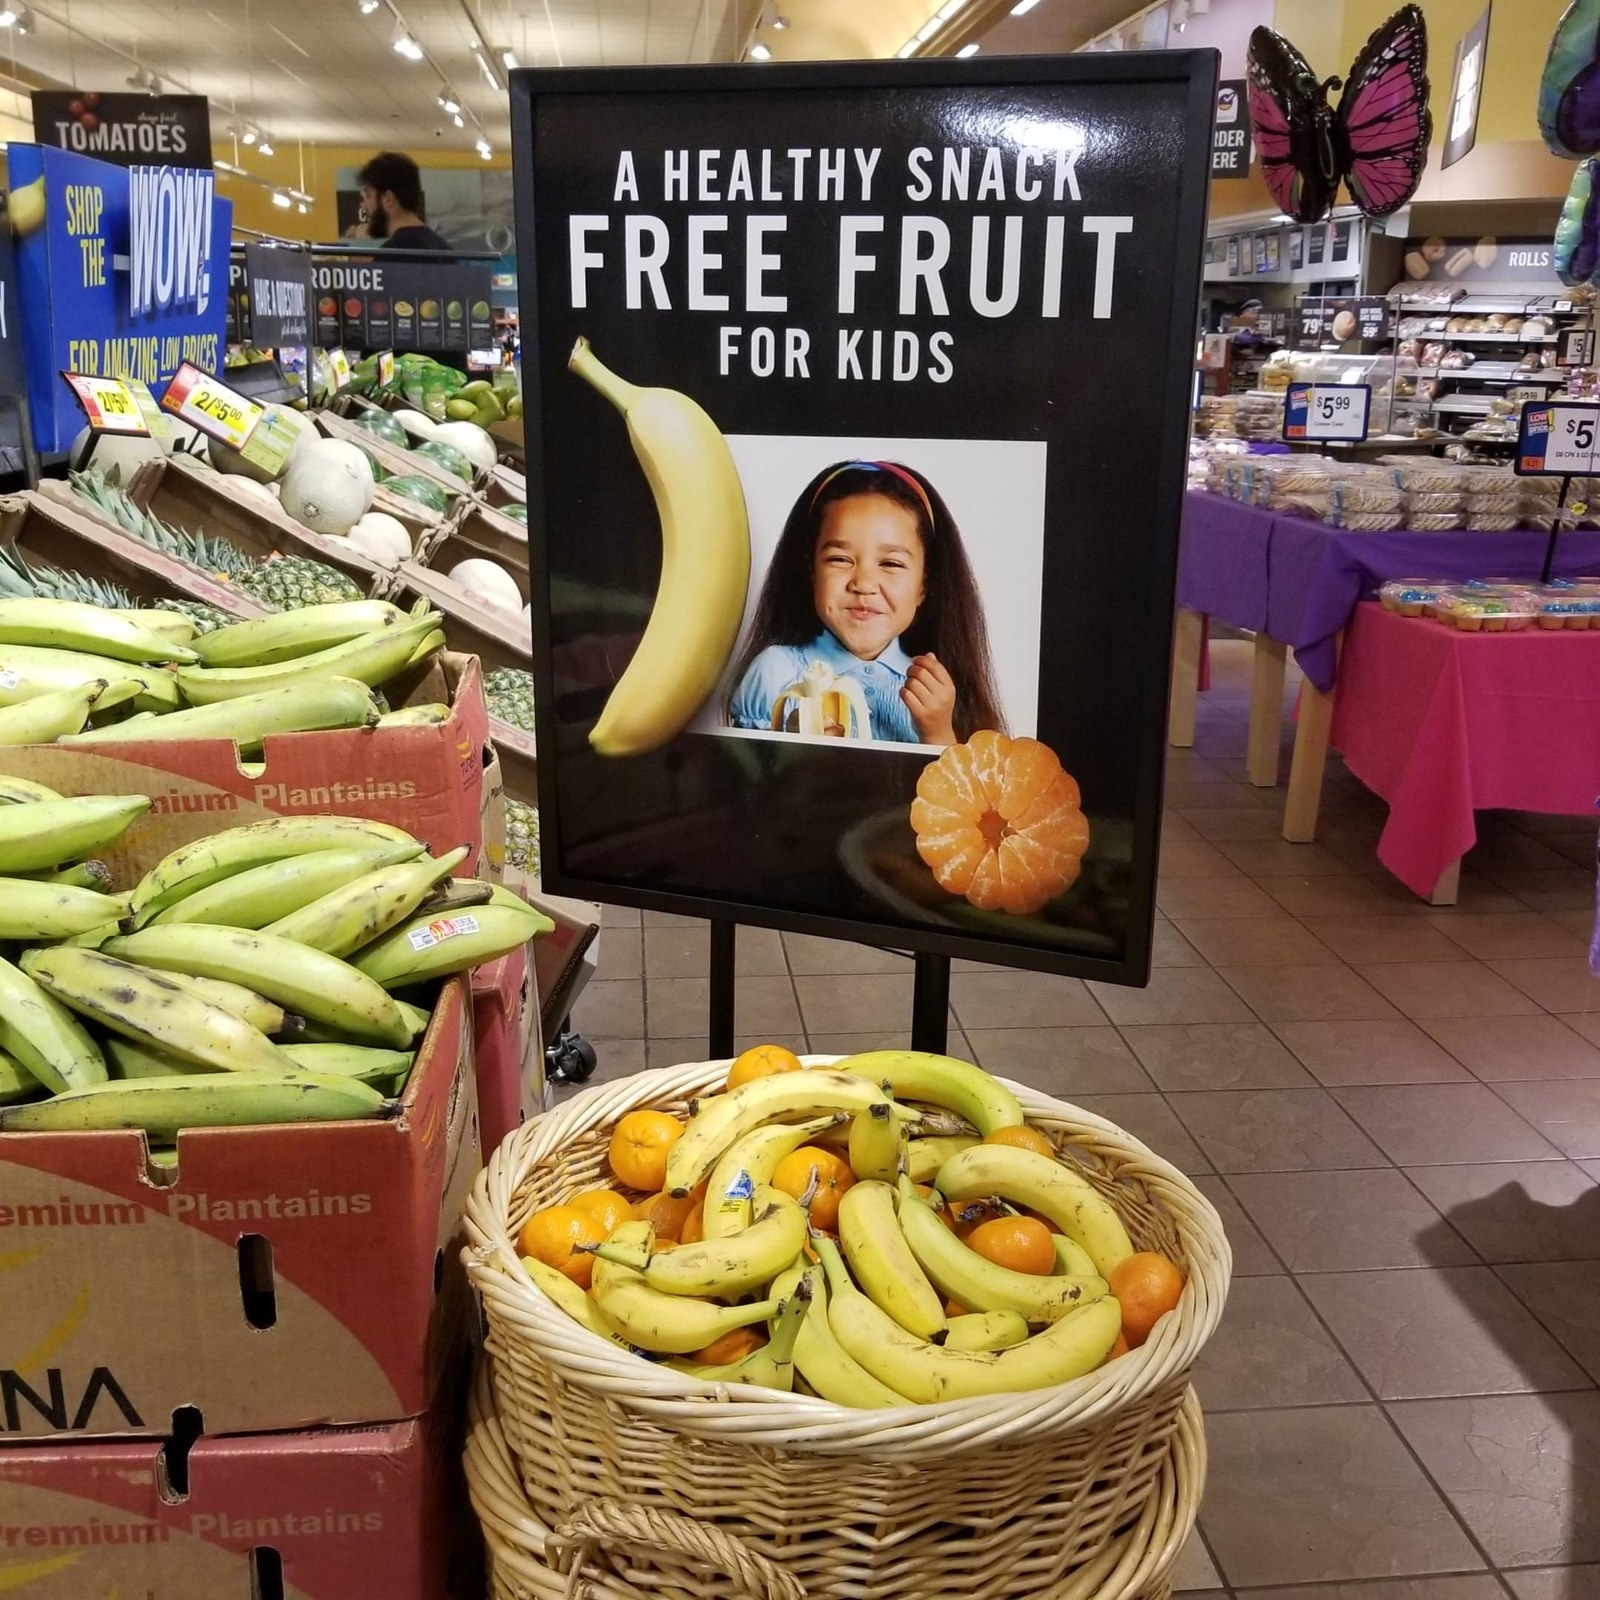 A free produce basket for children